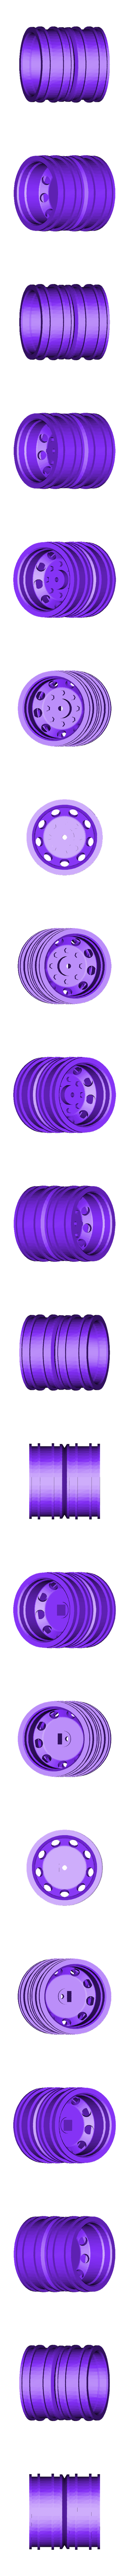 gante_AR_double.STL Download free STL file rc truck 1/14 rear rim double tires • 3D print object, r083726